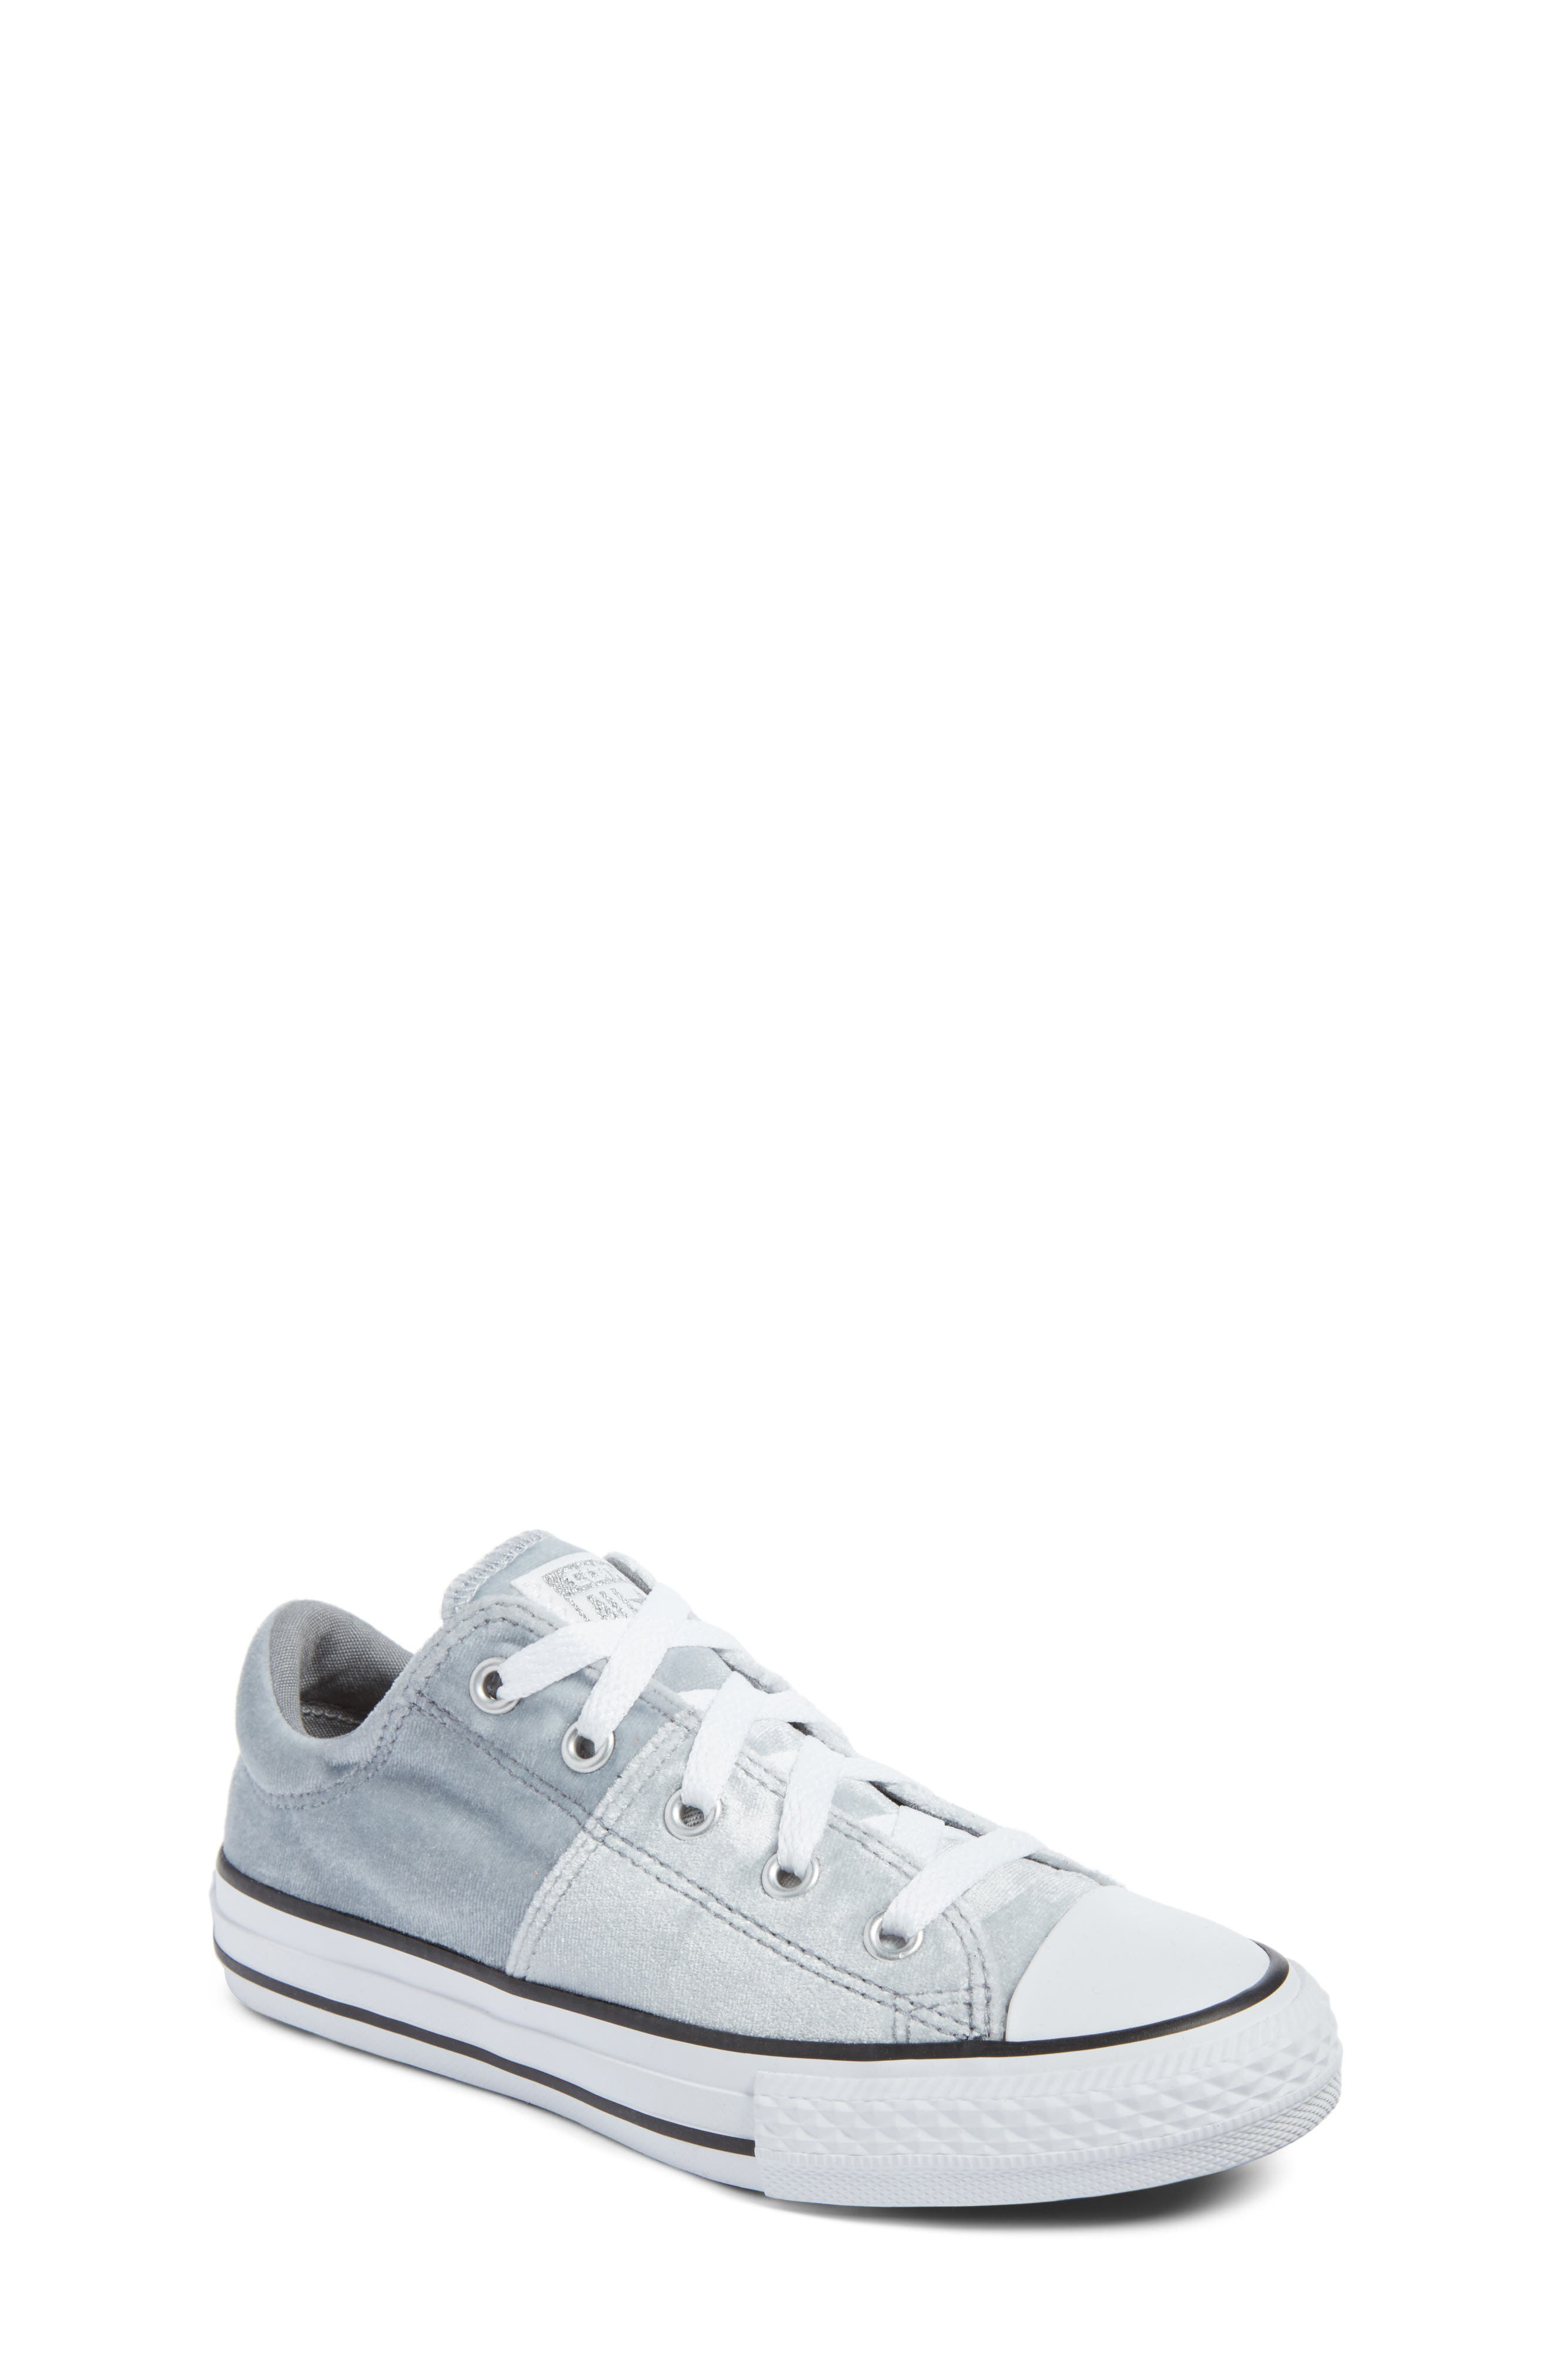 Chuck Taylor<sup>®</sup> All Star<sup>®</sup> Madison Velvet Low Top Sneaker,                         Main,                         color, 020